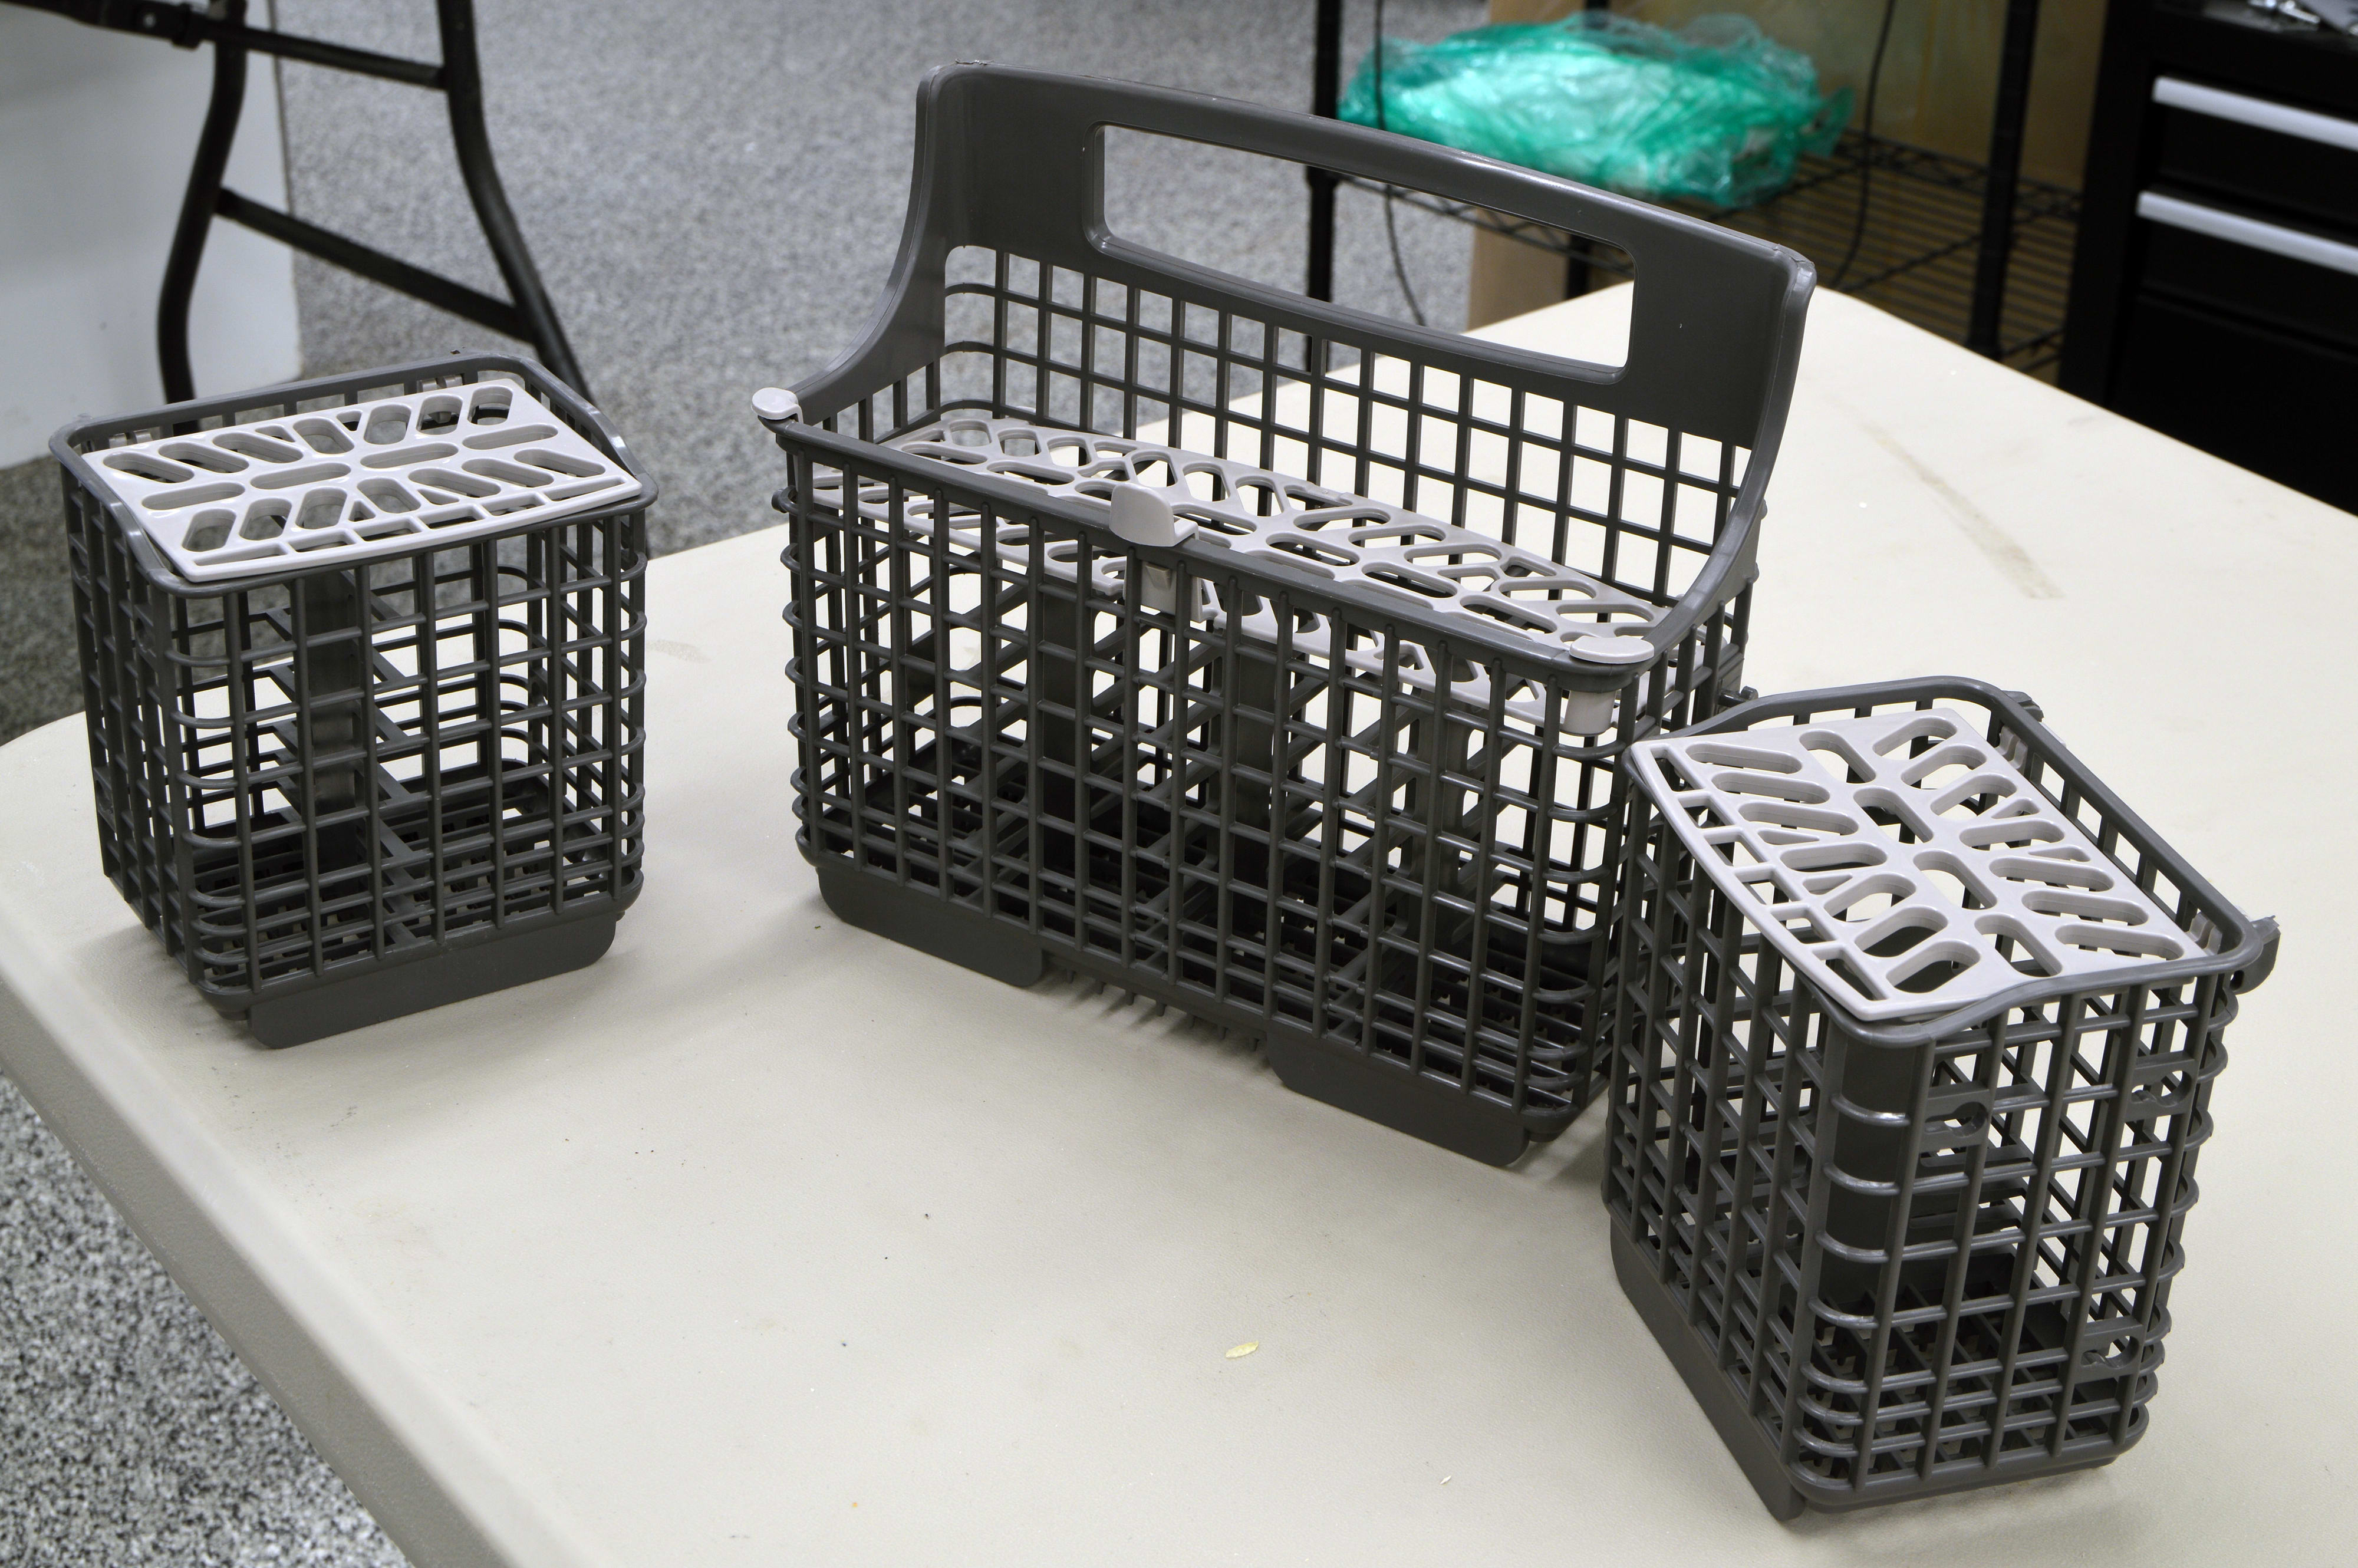 Cutlery basket divided into three sections